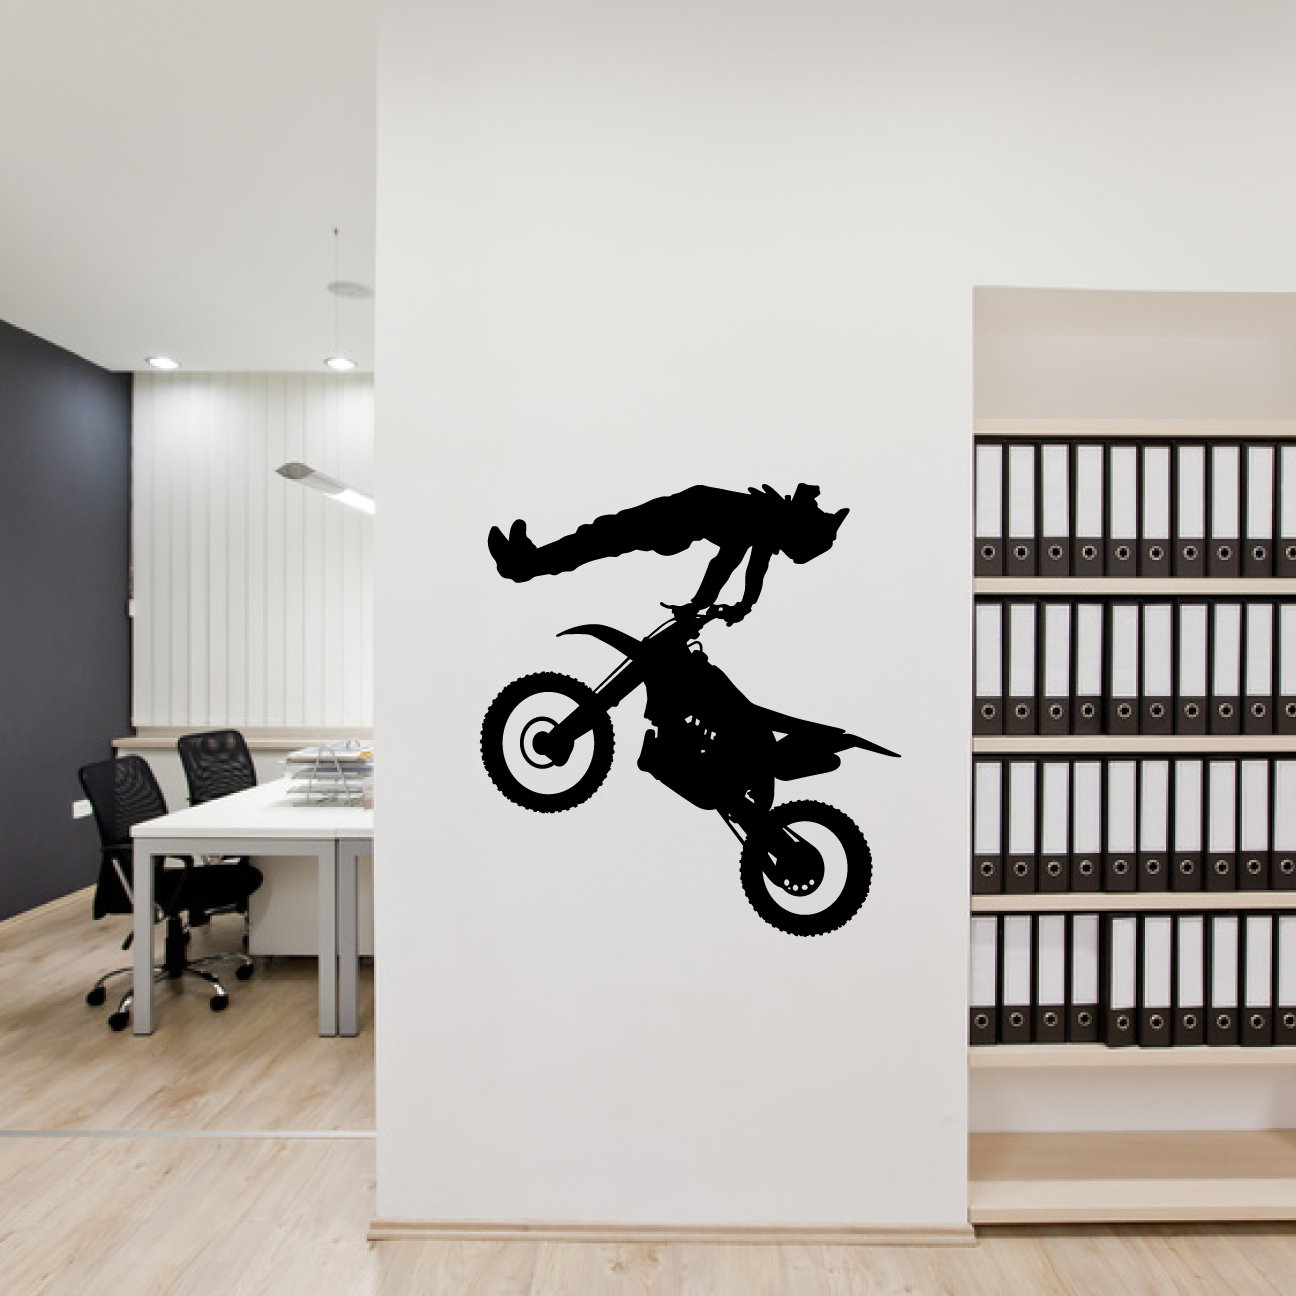 Motocross Bedroom Decor Amazoncom Motocross Wall Decal Sticker 10 Decal Stickers And